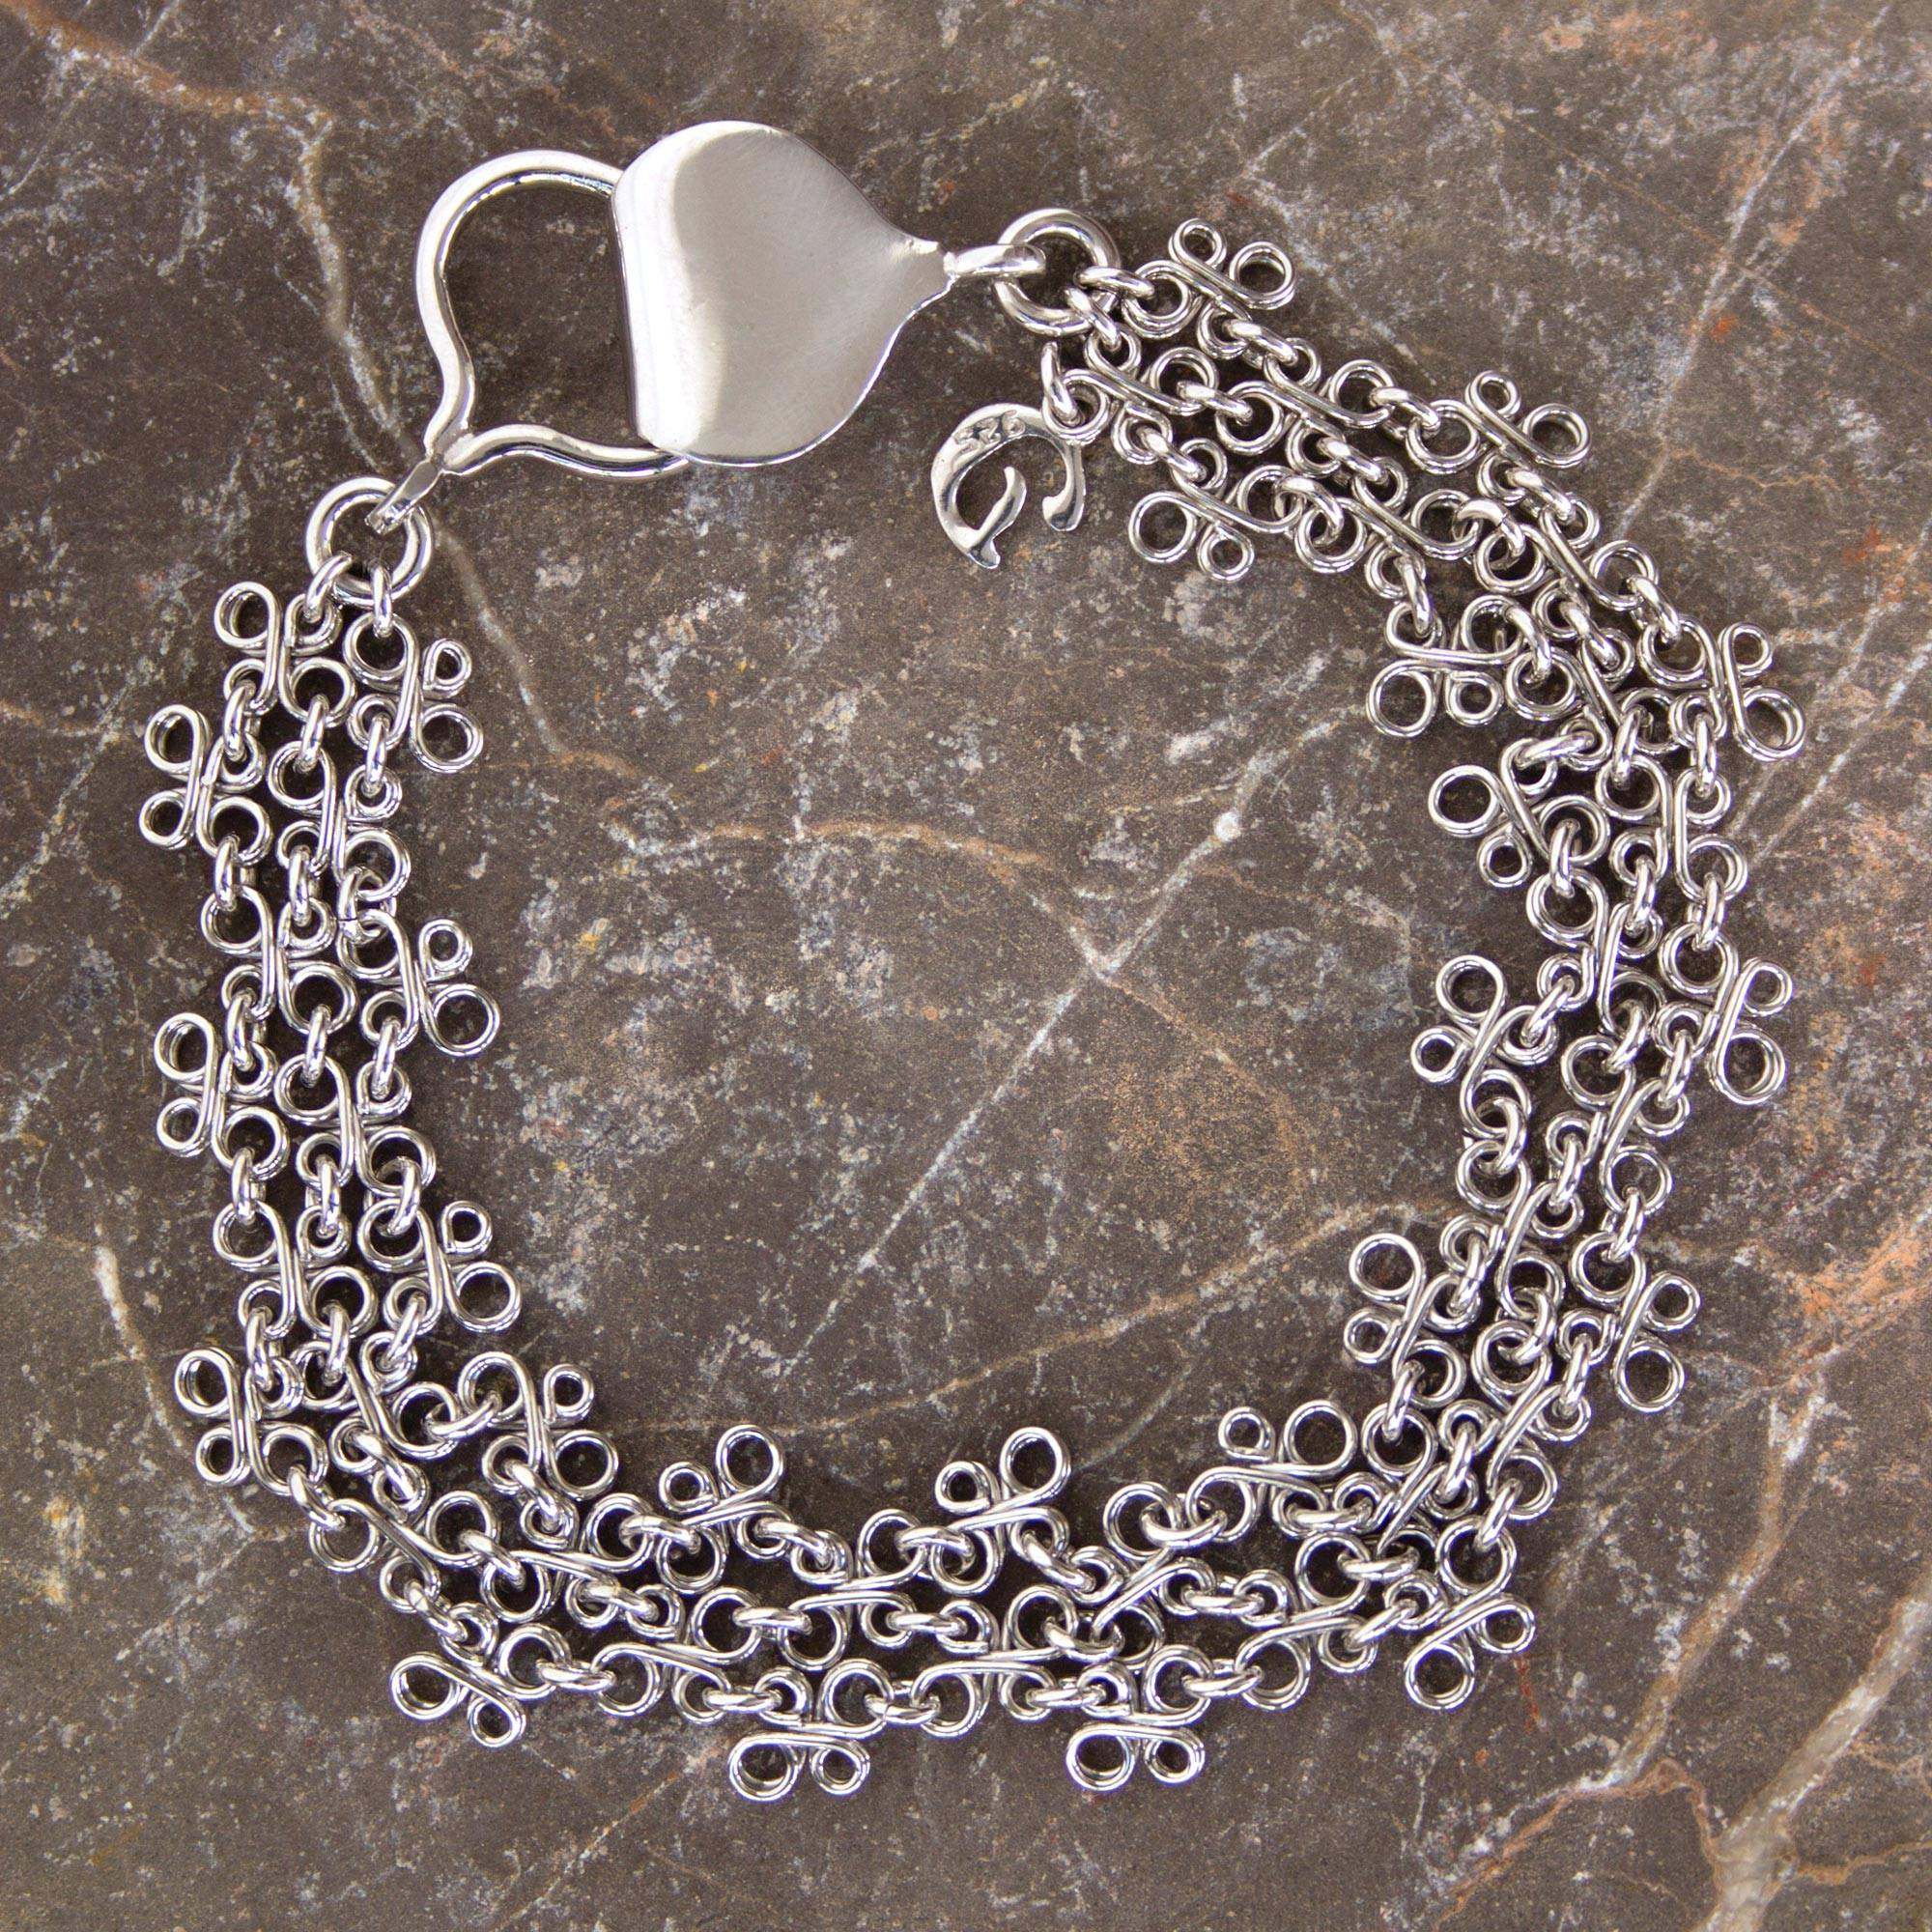 Hand Crafted Sterling Silver Chainmail Charm Bracelet Verona